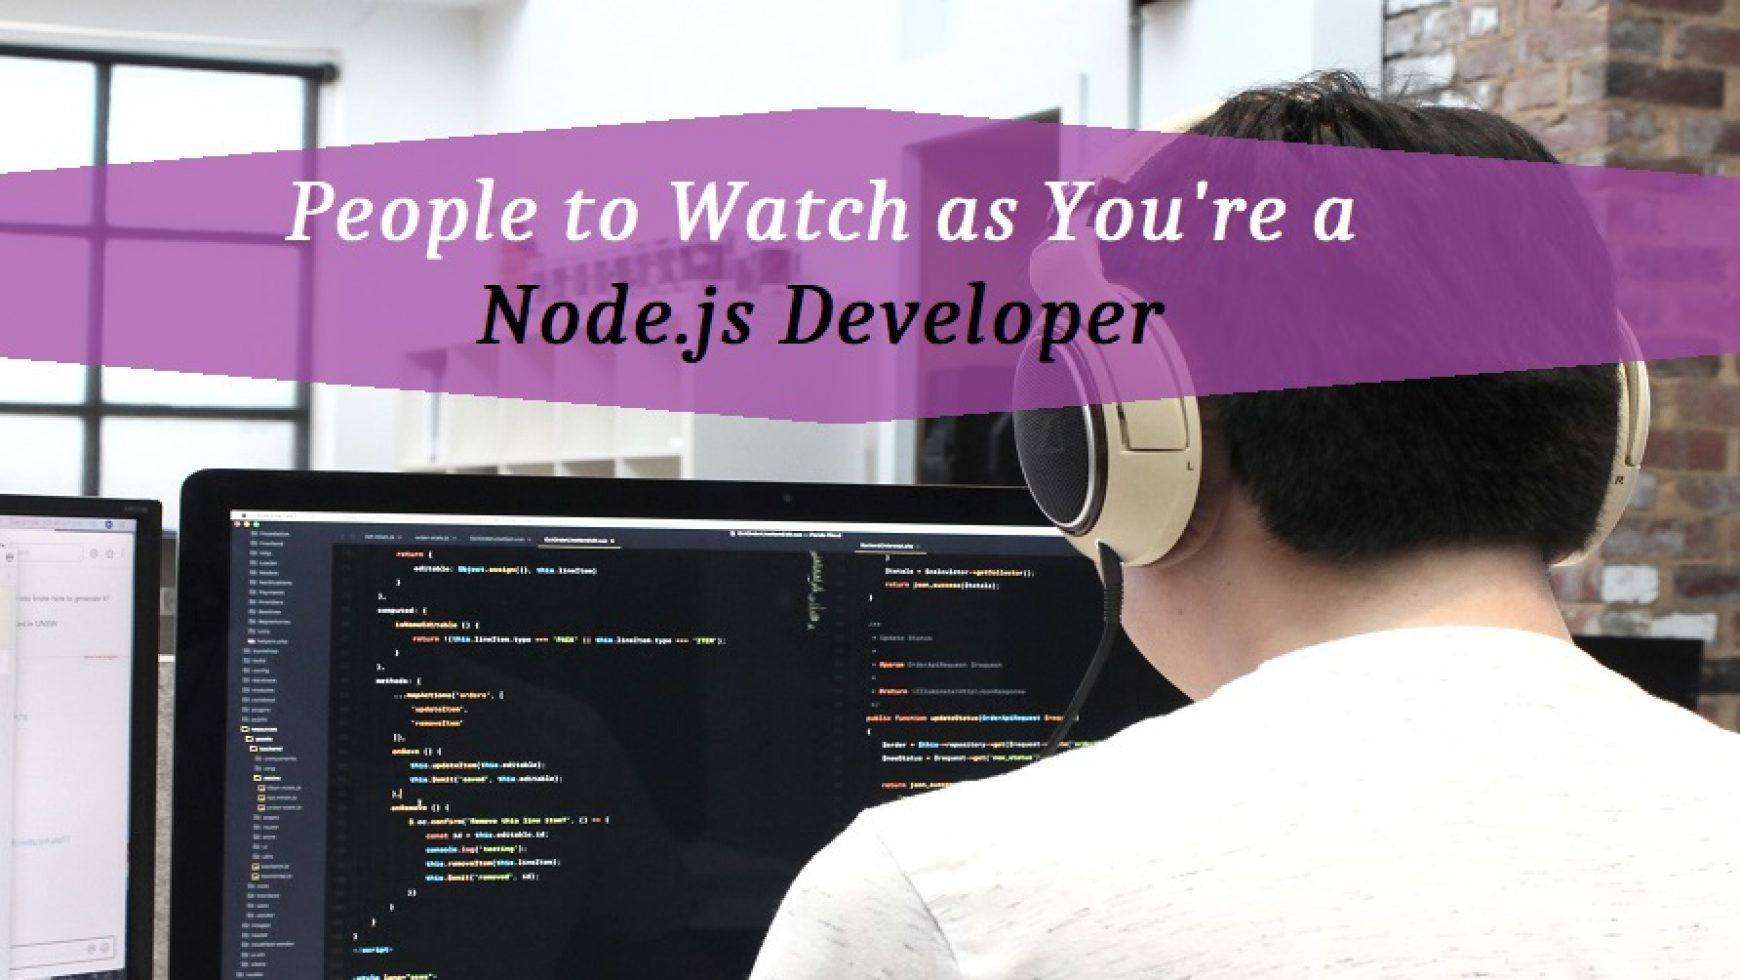 People to Watch as You're a Node.js Developer